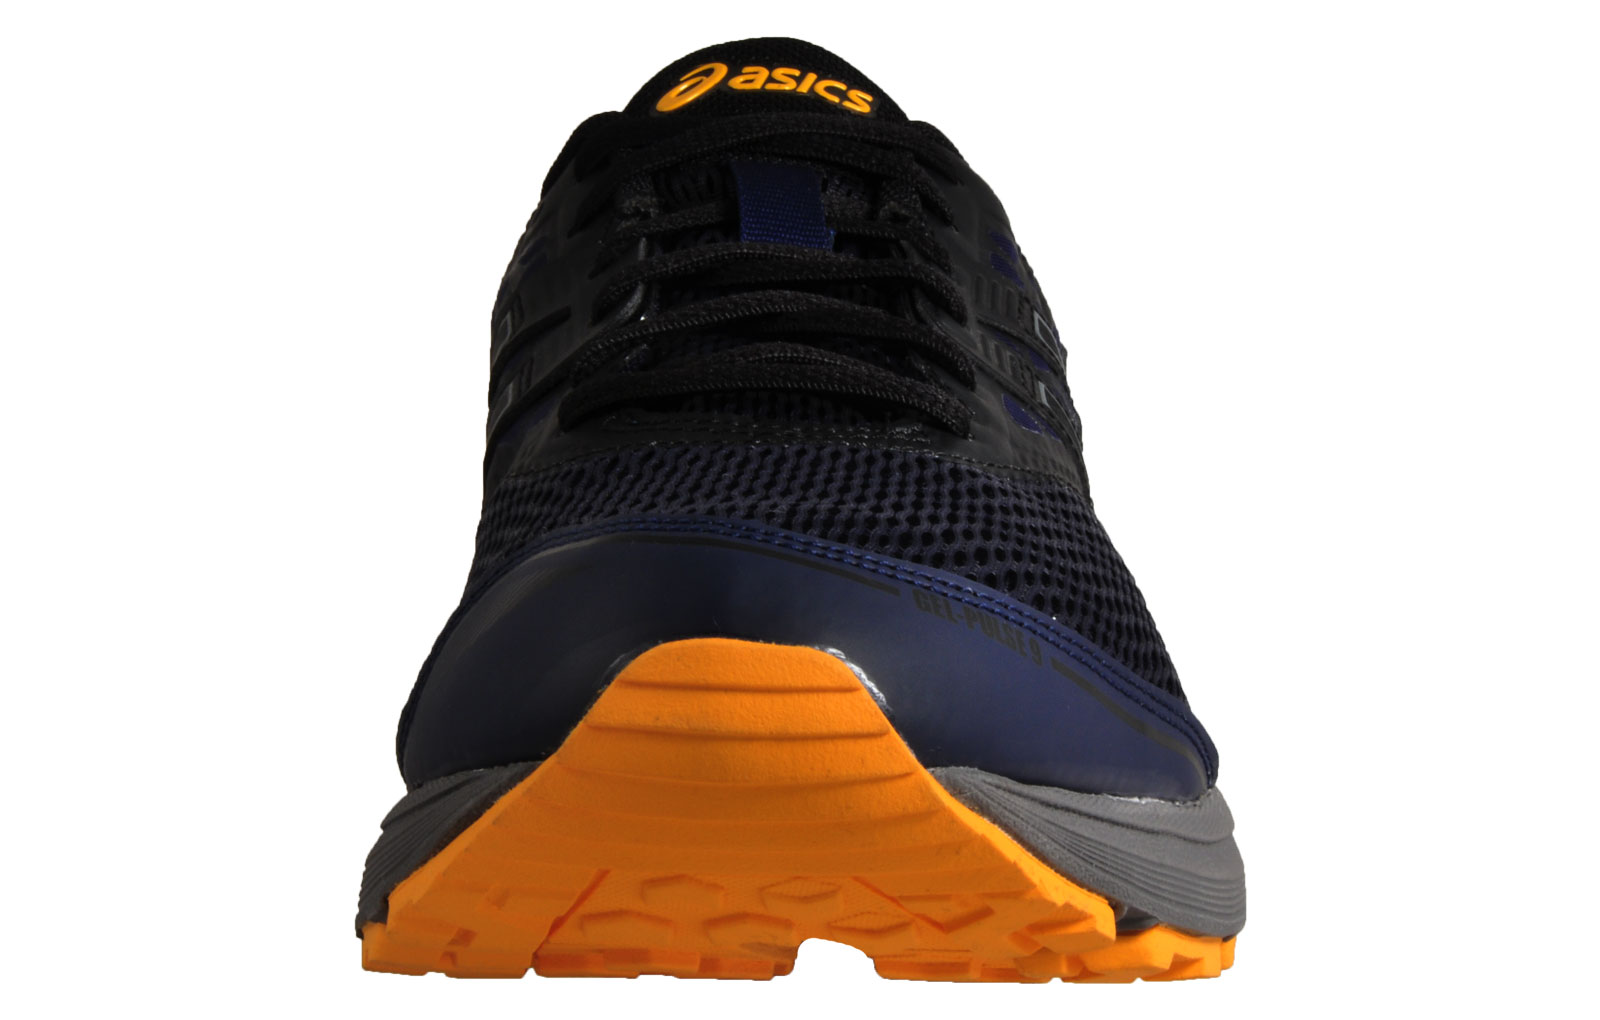 Details about Asics Gel Pulse 9 GTX Gore-Tex Waterproof Men's Running Shoes  Trainers Black